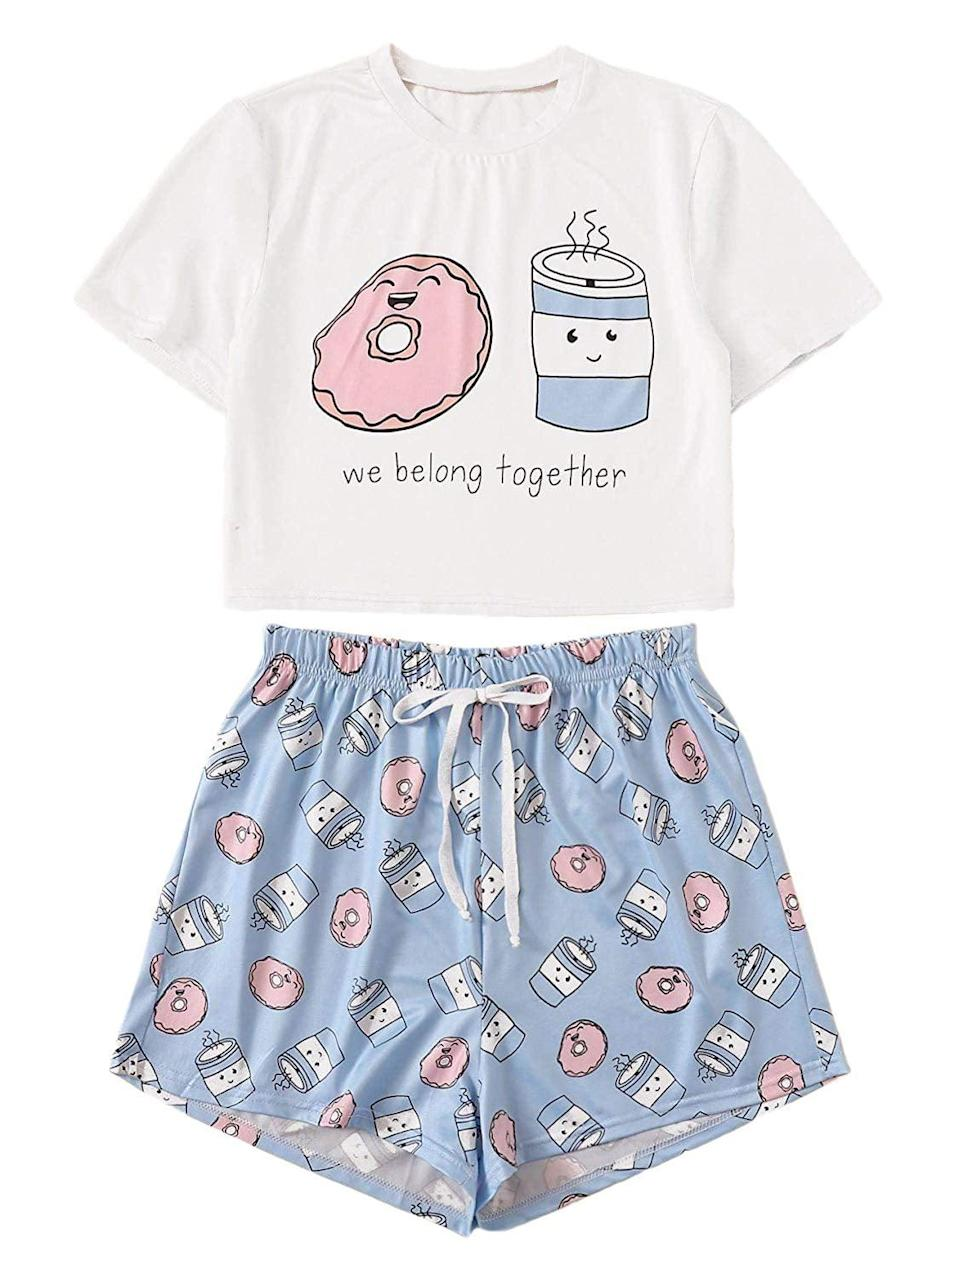 <p>The graphics on this <span>DIDK Coffee and Doughnut Pajama Set</span> ($21) are adorable, so you can prepare to get tons of compliments when wearing it. If your closet consists of basics that can work for most casual occasions, you can't go wrong with the purchase of this.</p>